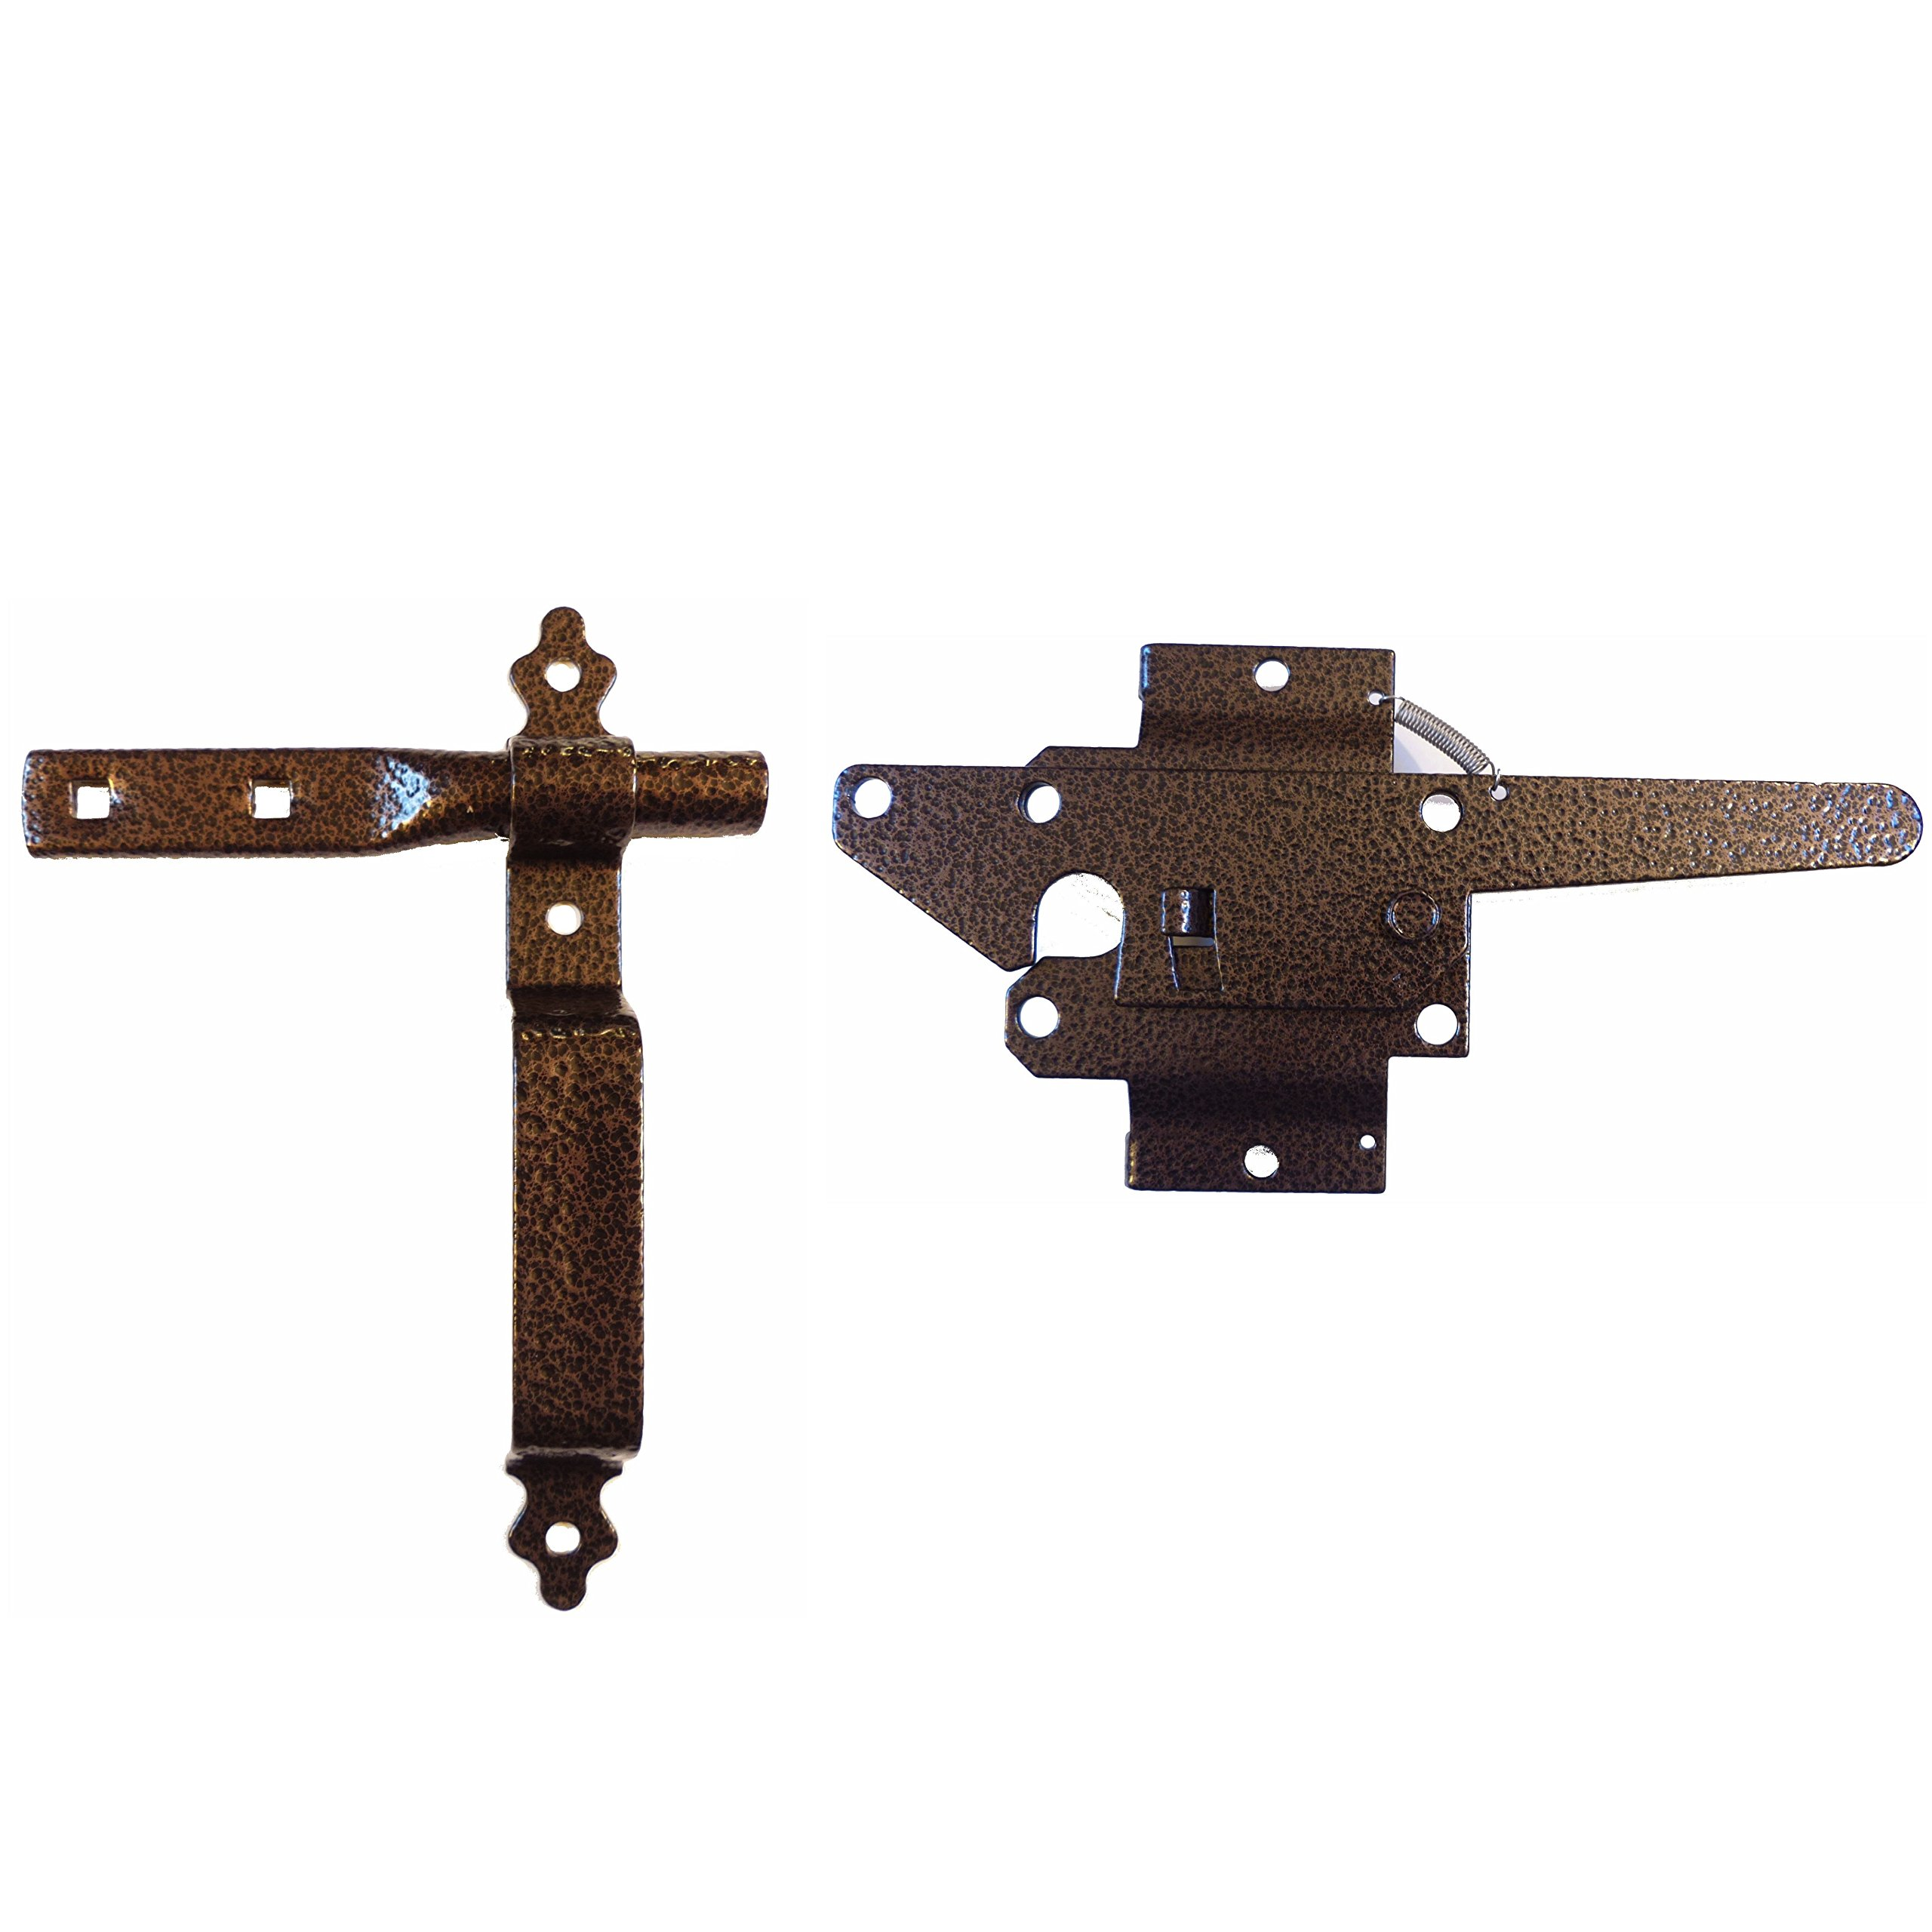 Wood Gate Latch w/Handle - Wood Fence Latch Gate Kit, Wood Fence Gate Latch Opens for Either Side of Gate - BRONZE COLORED Powder Coated Wood Gate Hardware